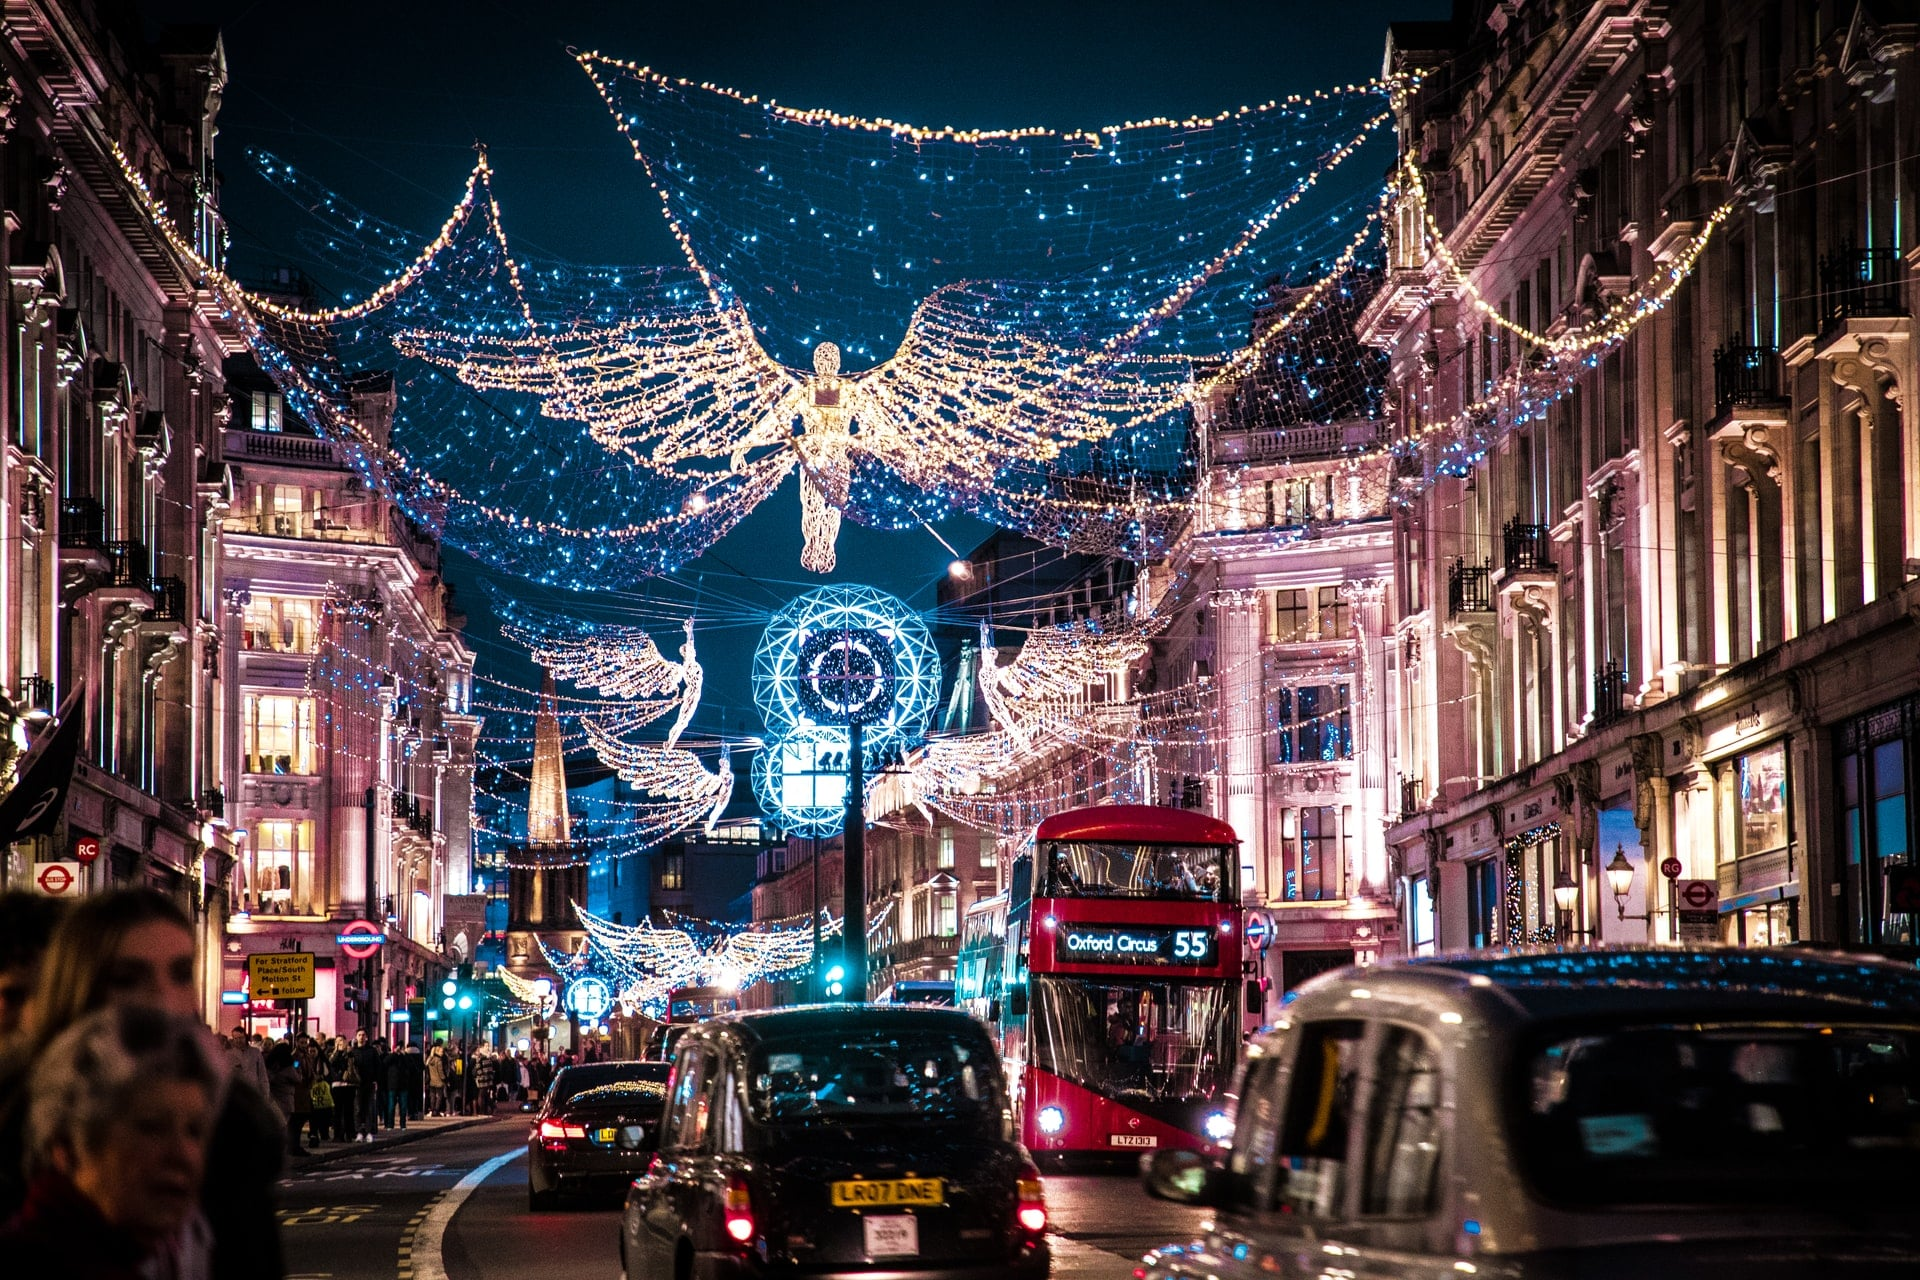 oxford-street-oxford-circus-christmas-lights-on-busy-london-street-things-to-do-in-london-at-christmas